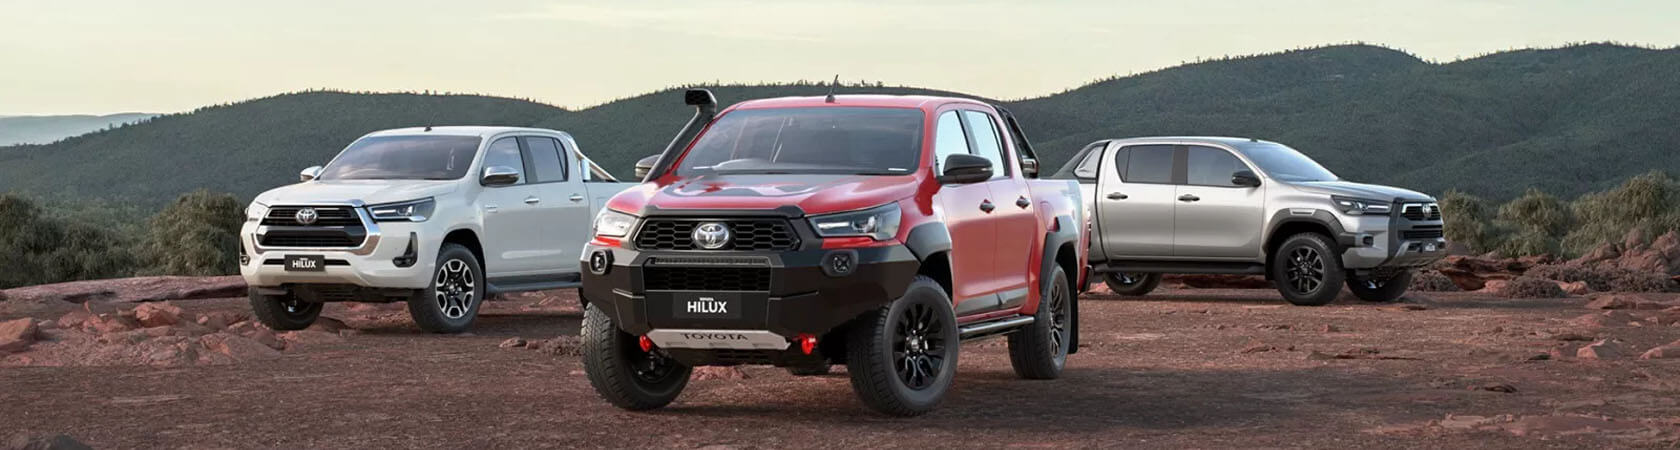 Jacob Toyota HiLux